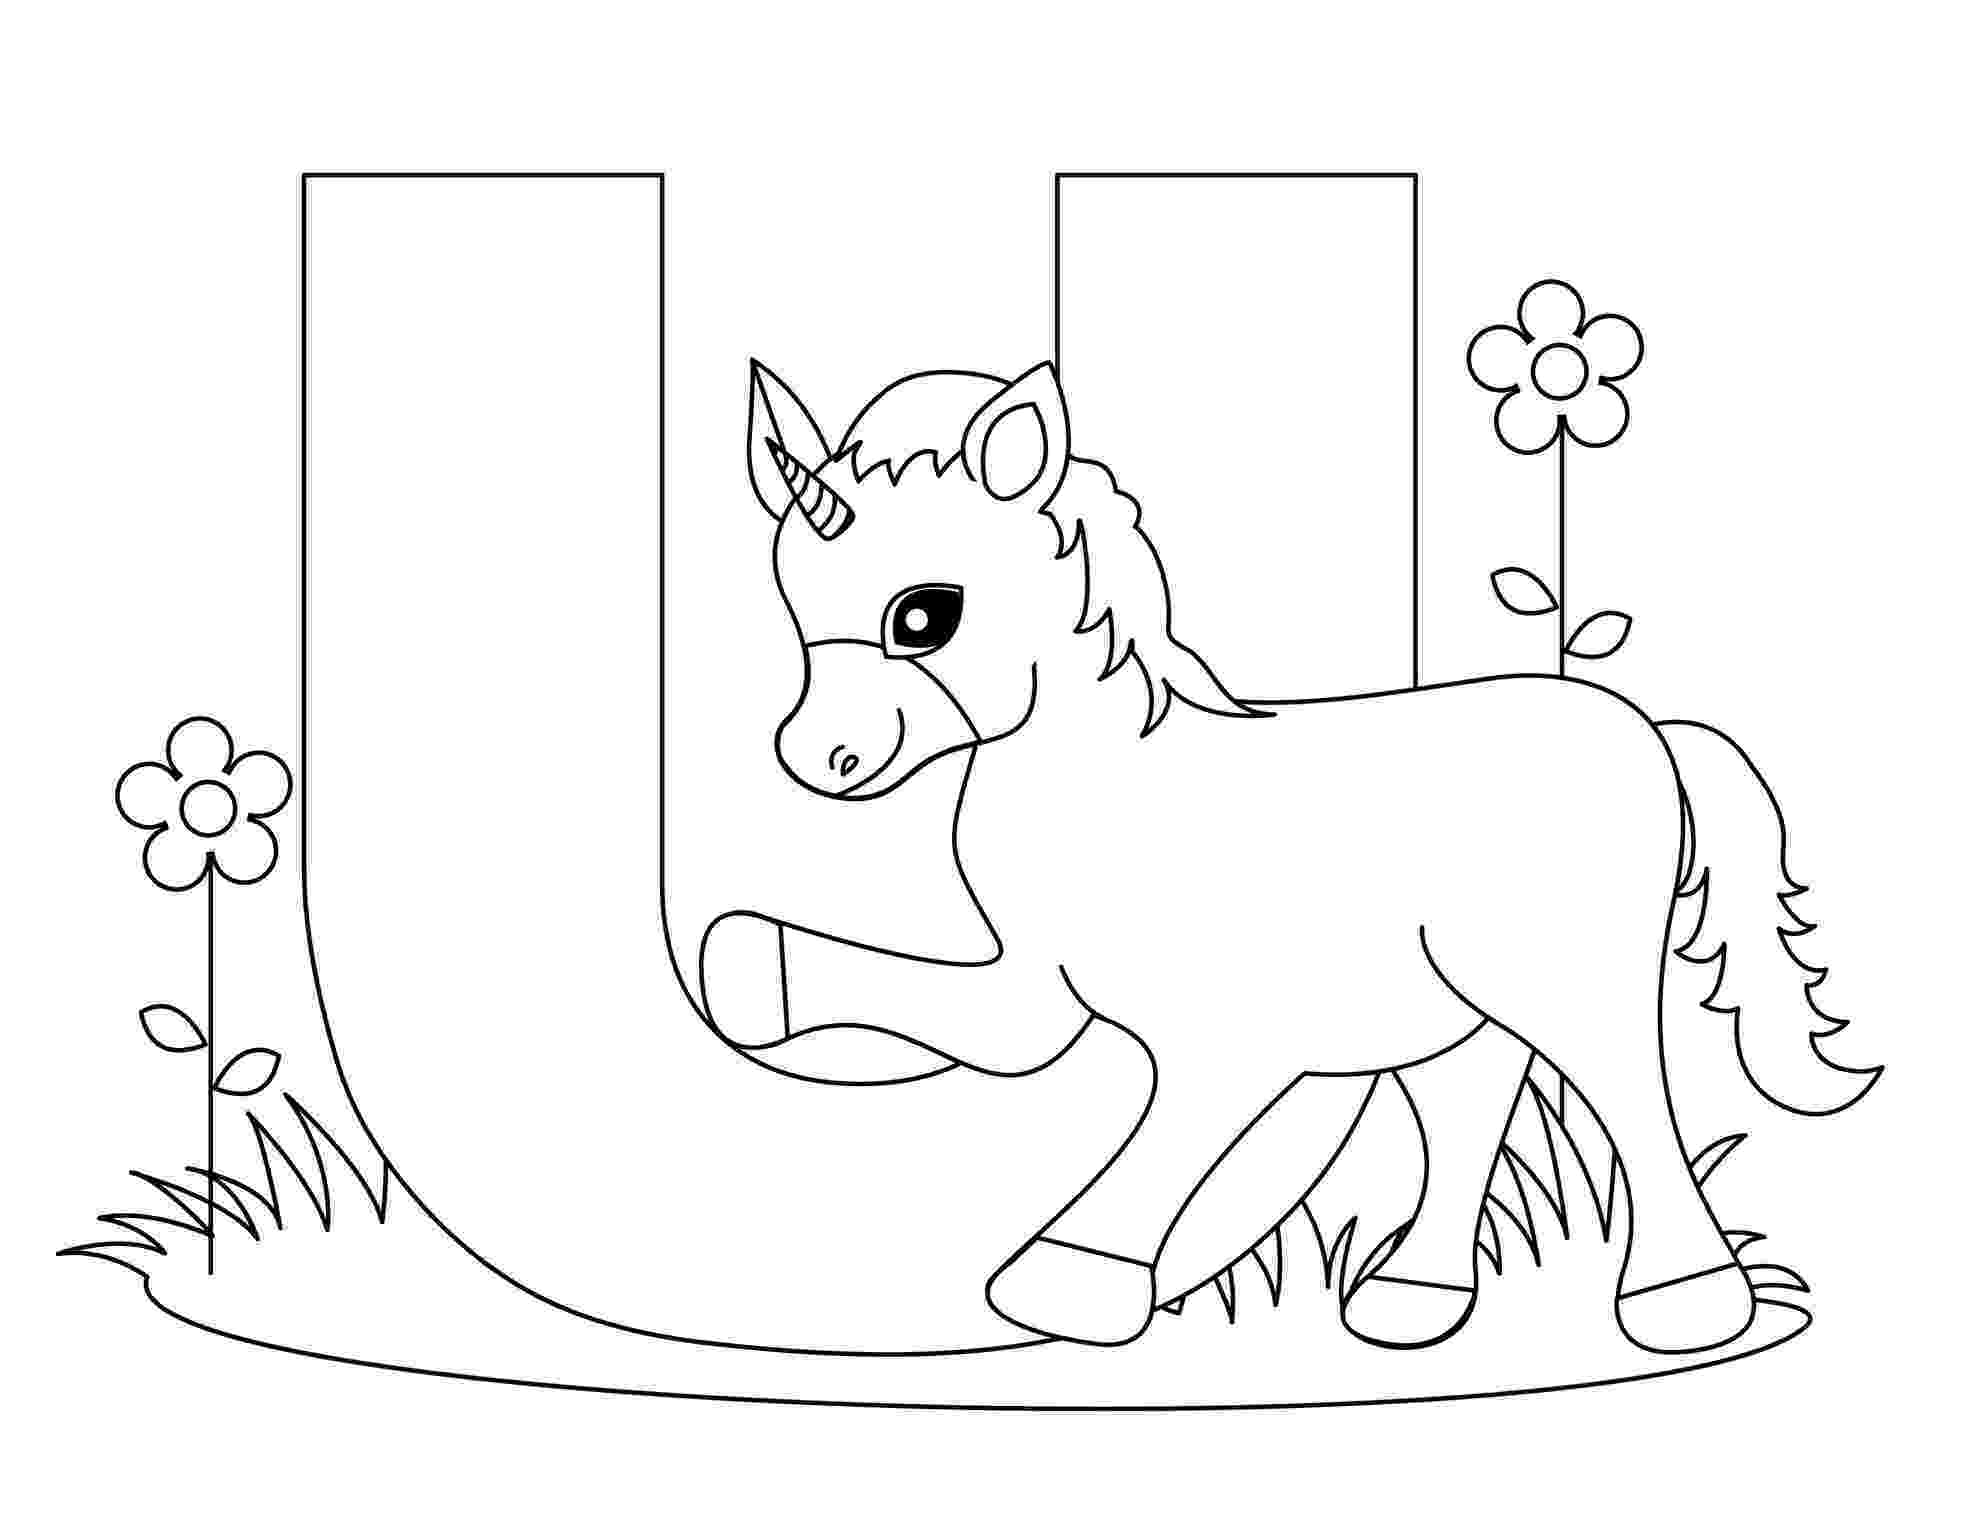 free alphabet coloring pages free printable alphabet coloring pages for kids best alphabet free coloring pages